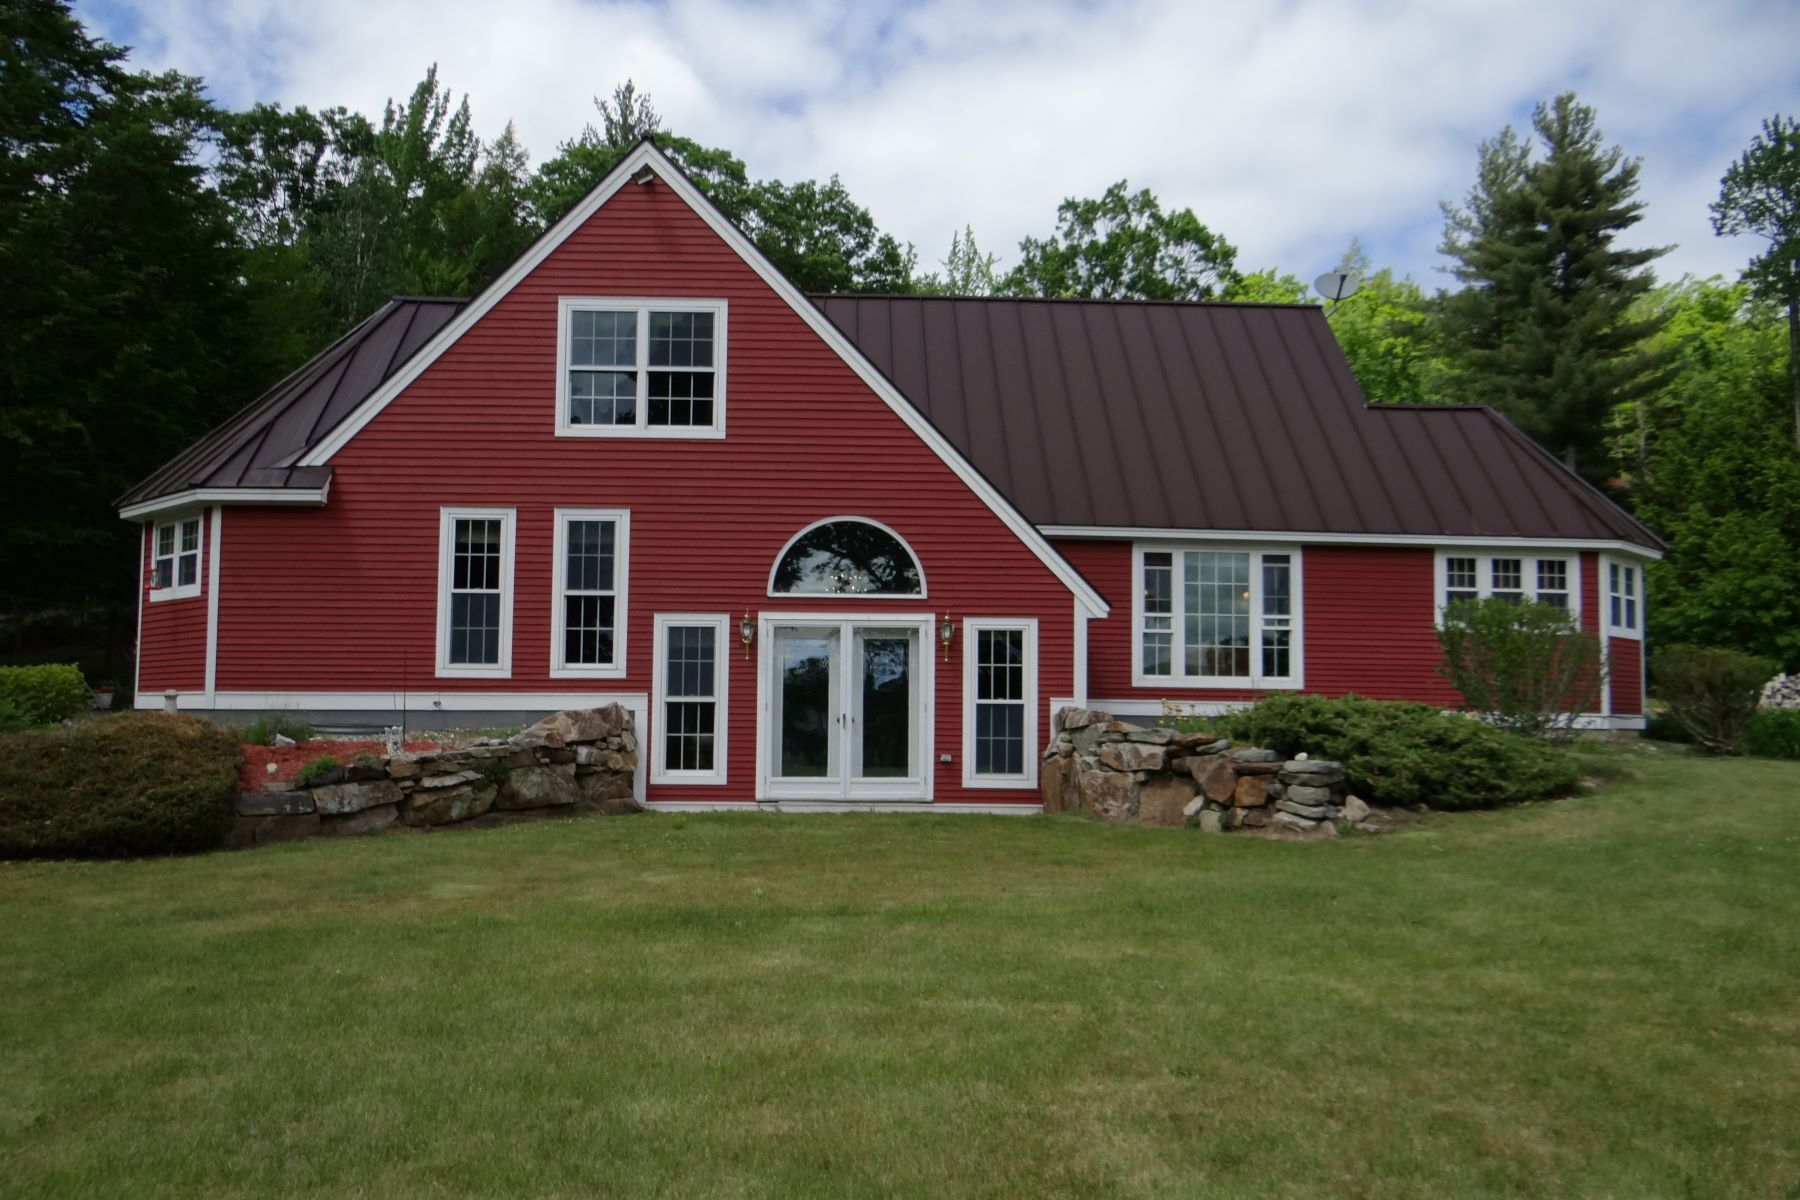 Single Family Home for Sale at Energy efficient with passive solar 135 Gove Rd Newport, New Hampshire, 03773 United States